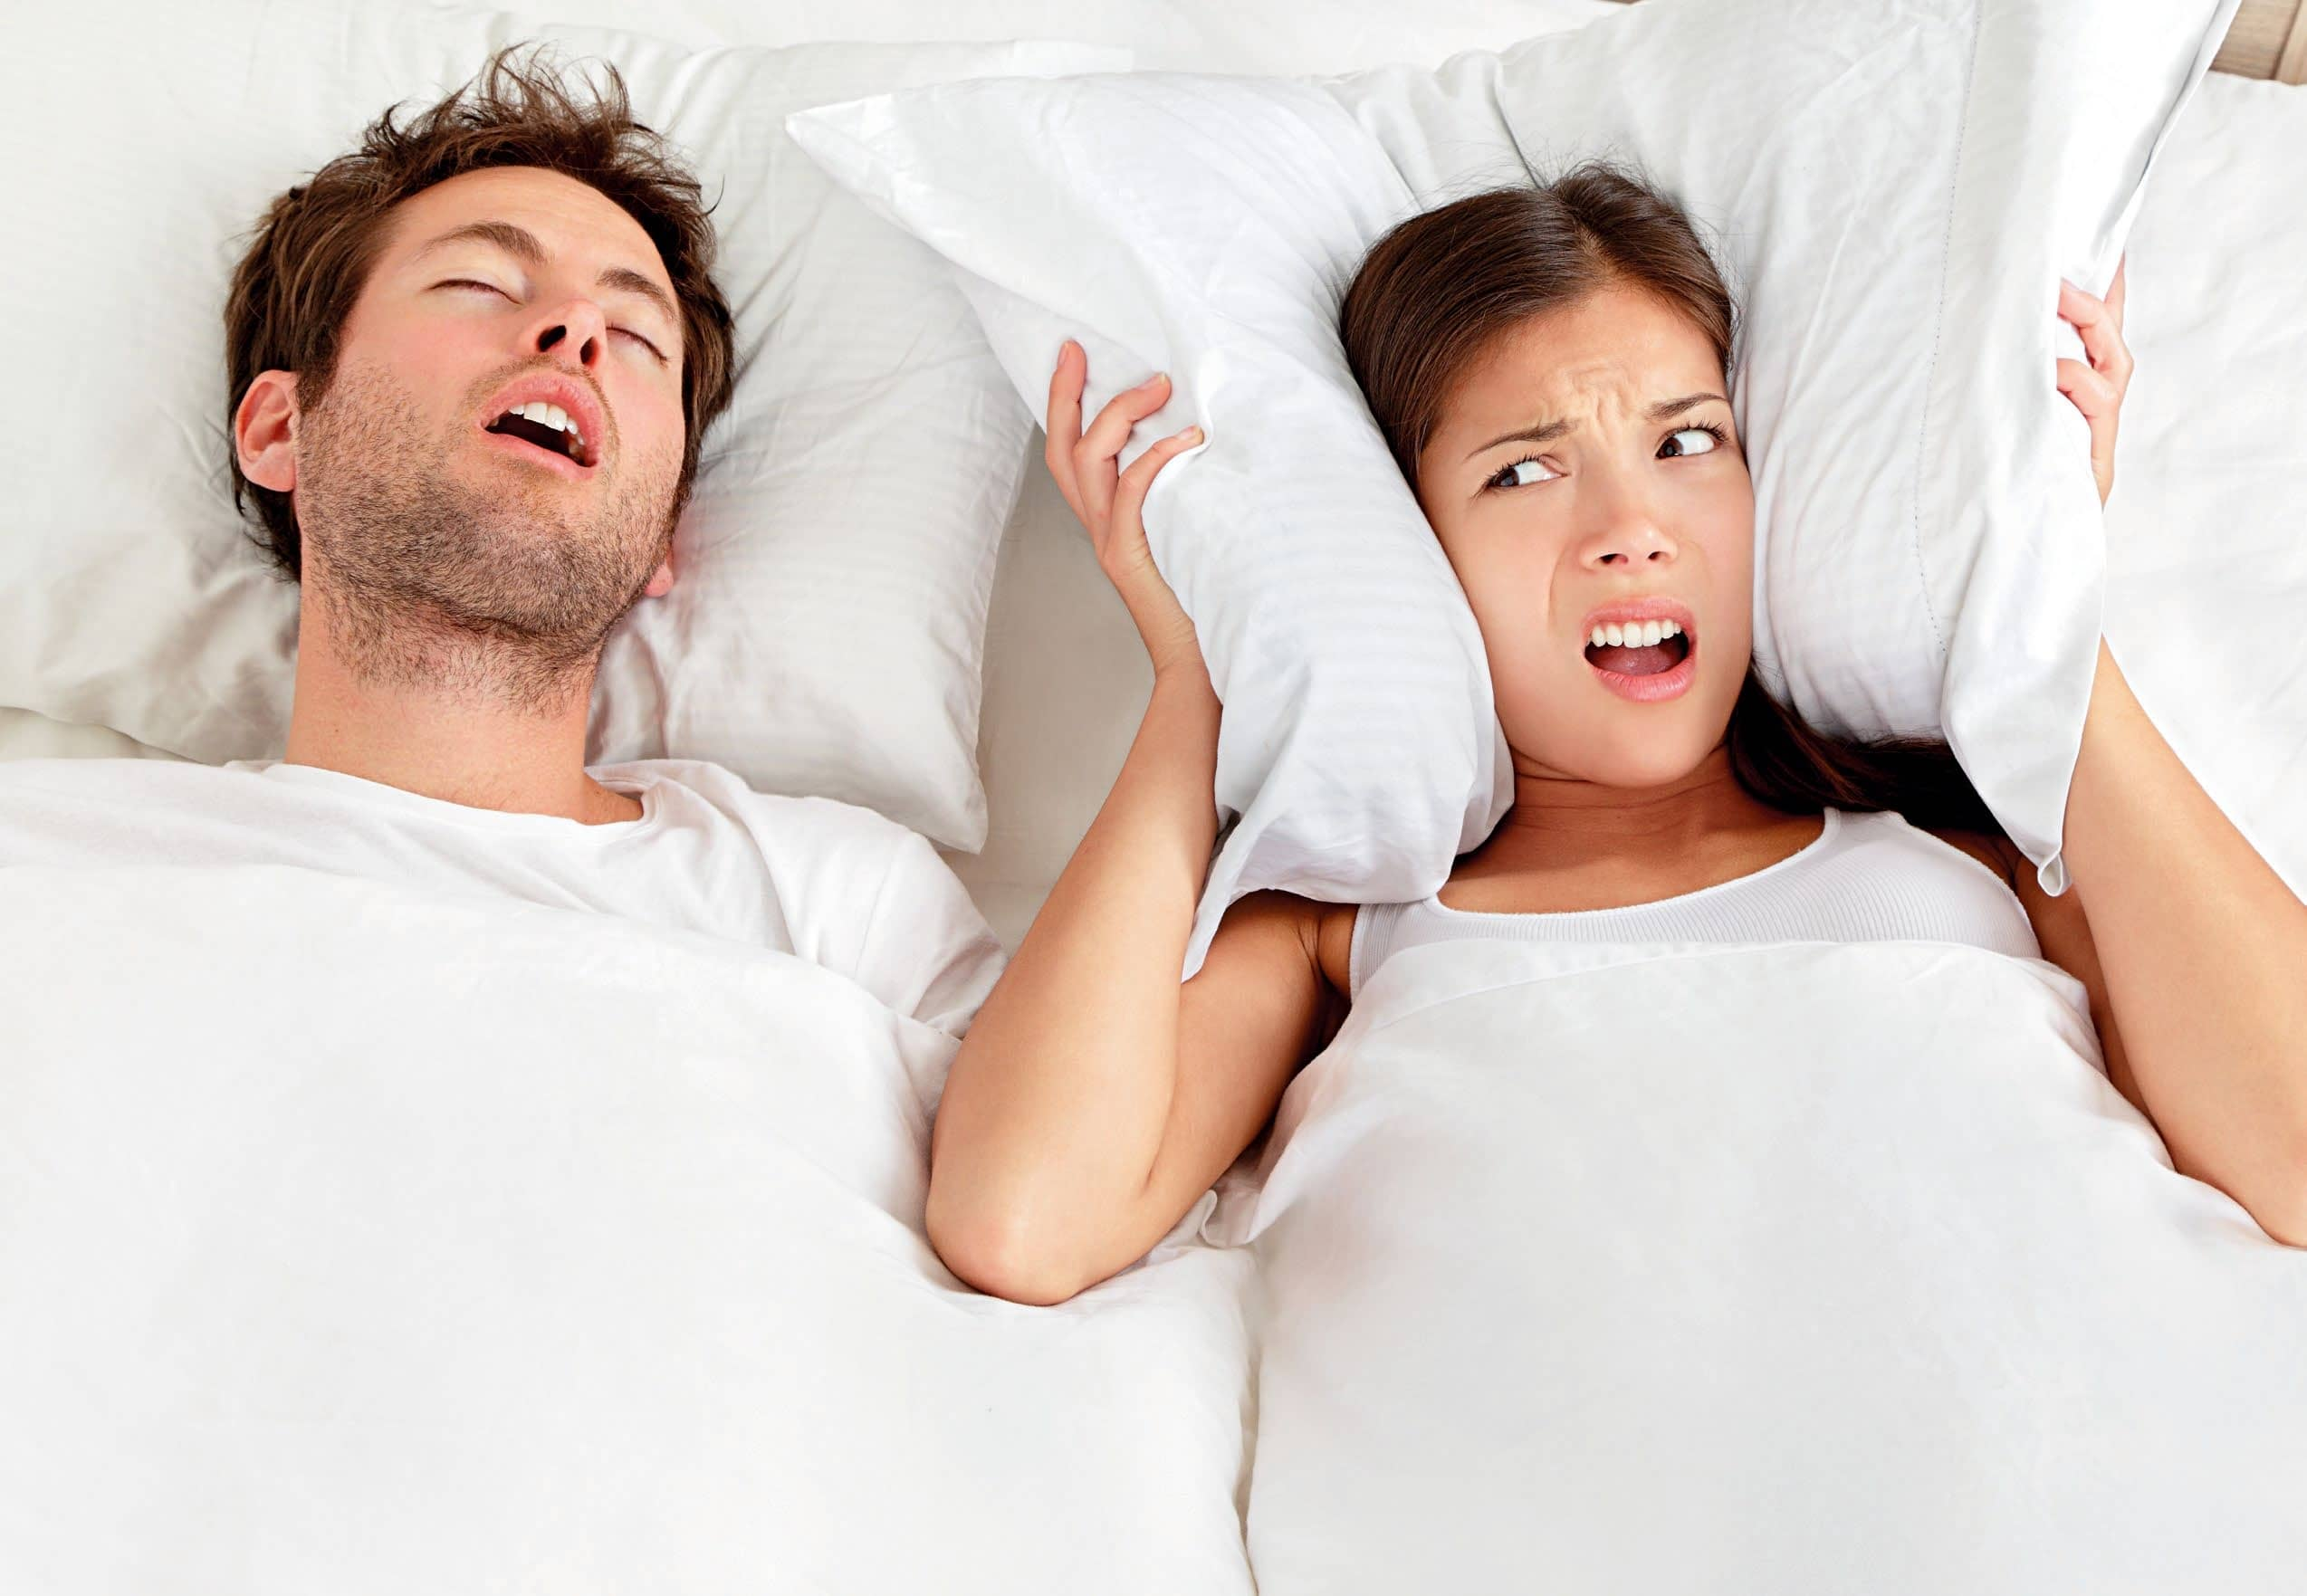 Can Sleeping Apart Mend Your Marriage?